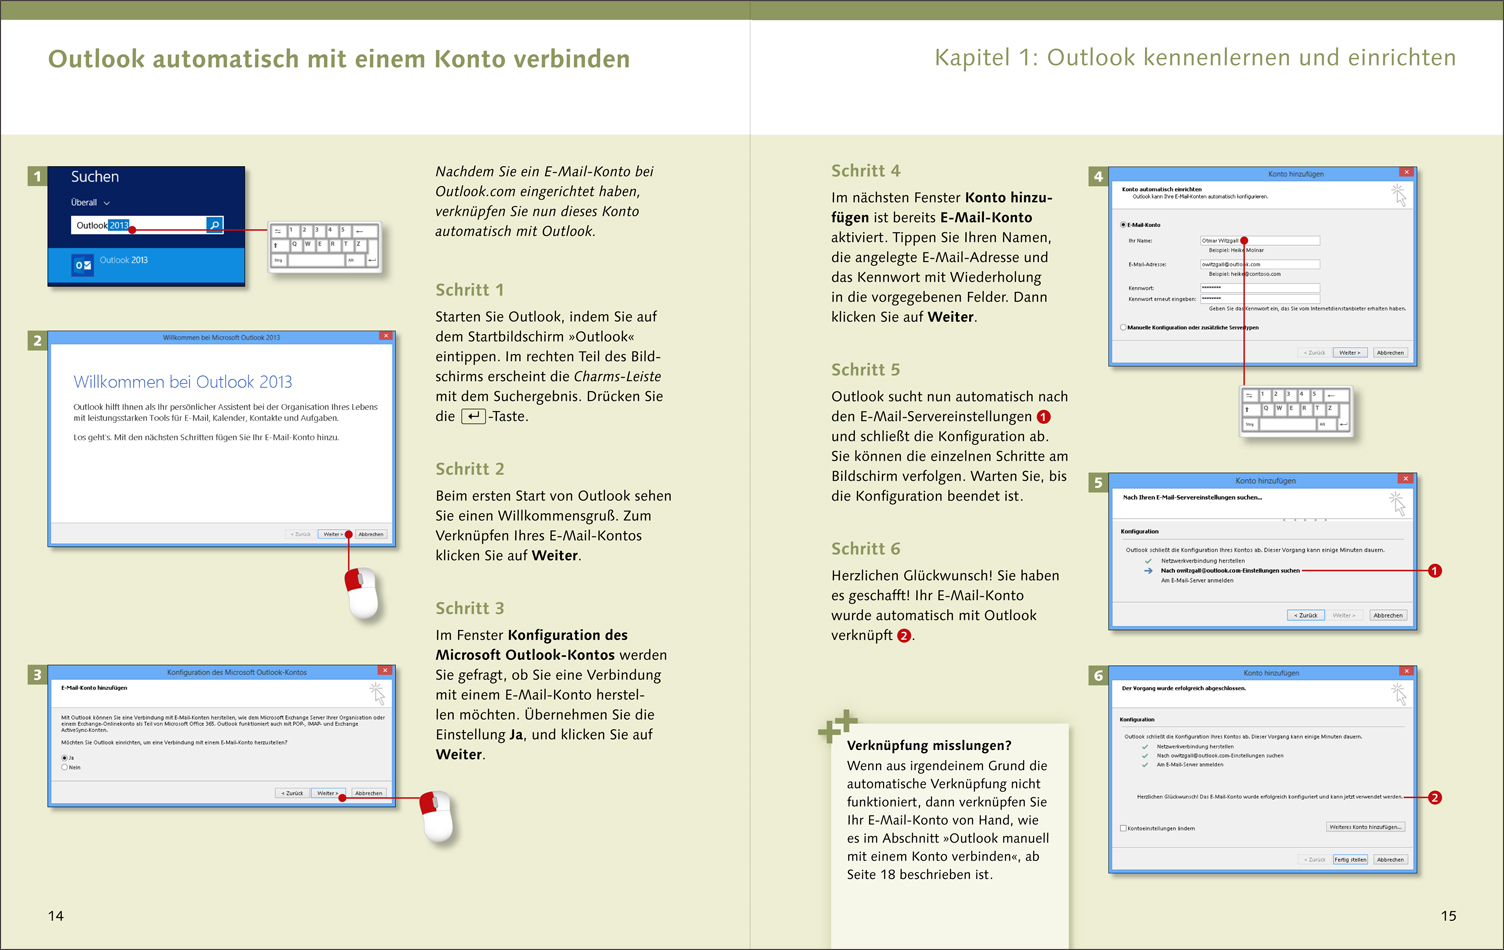 Outlook kennenlernen